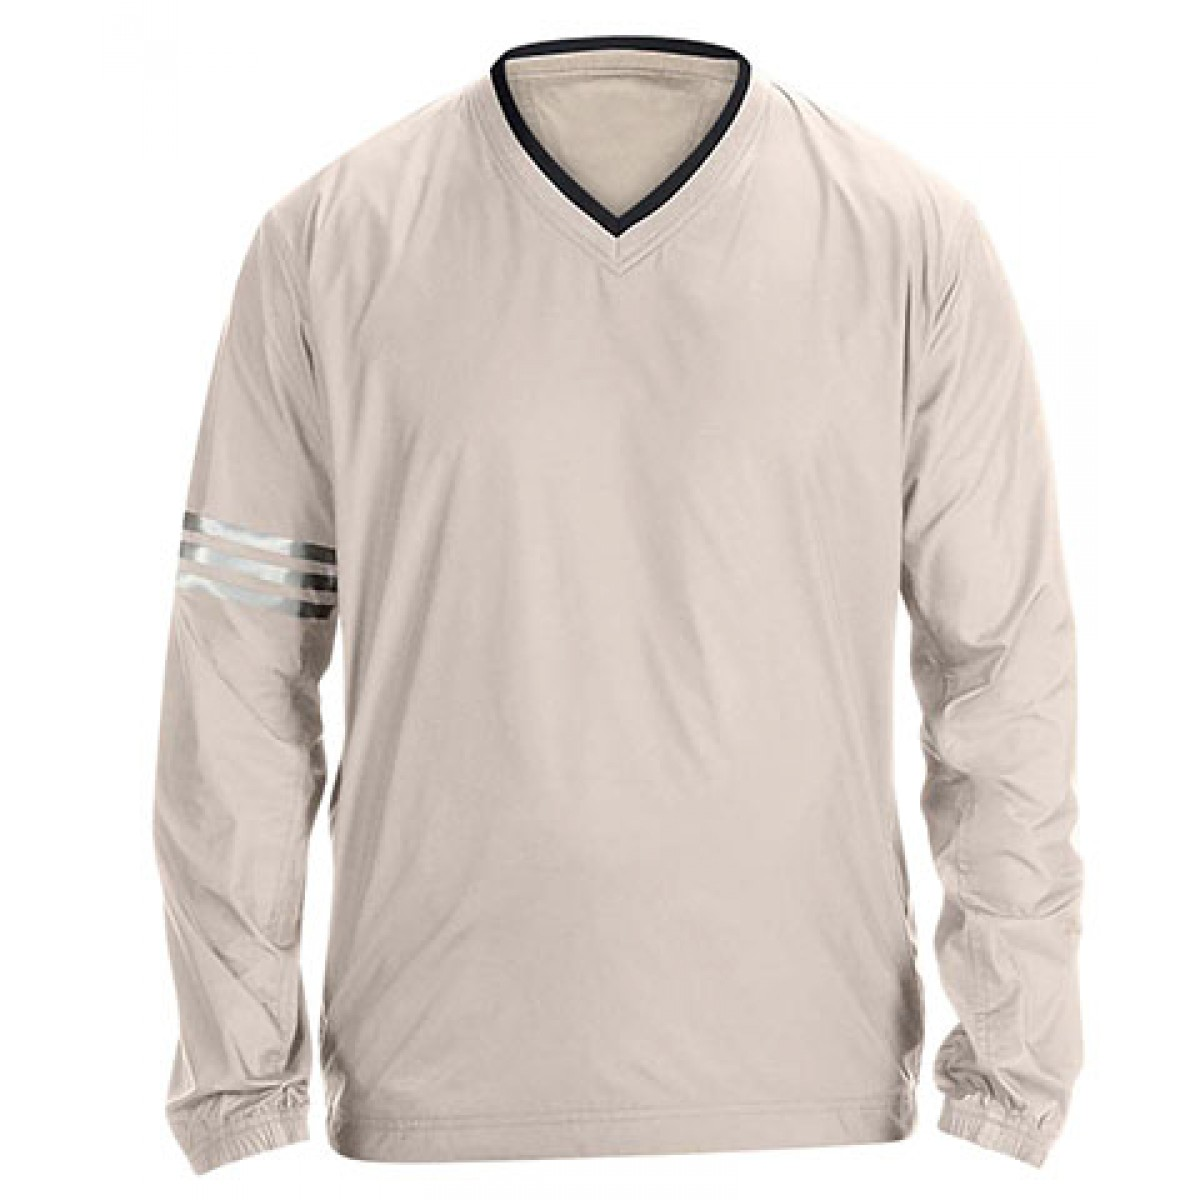 Adidas ClimaLite V-Neck Long Sleeve Wind Shirt